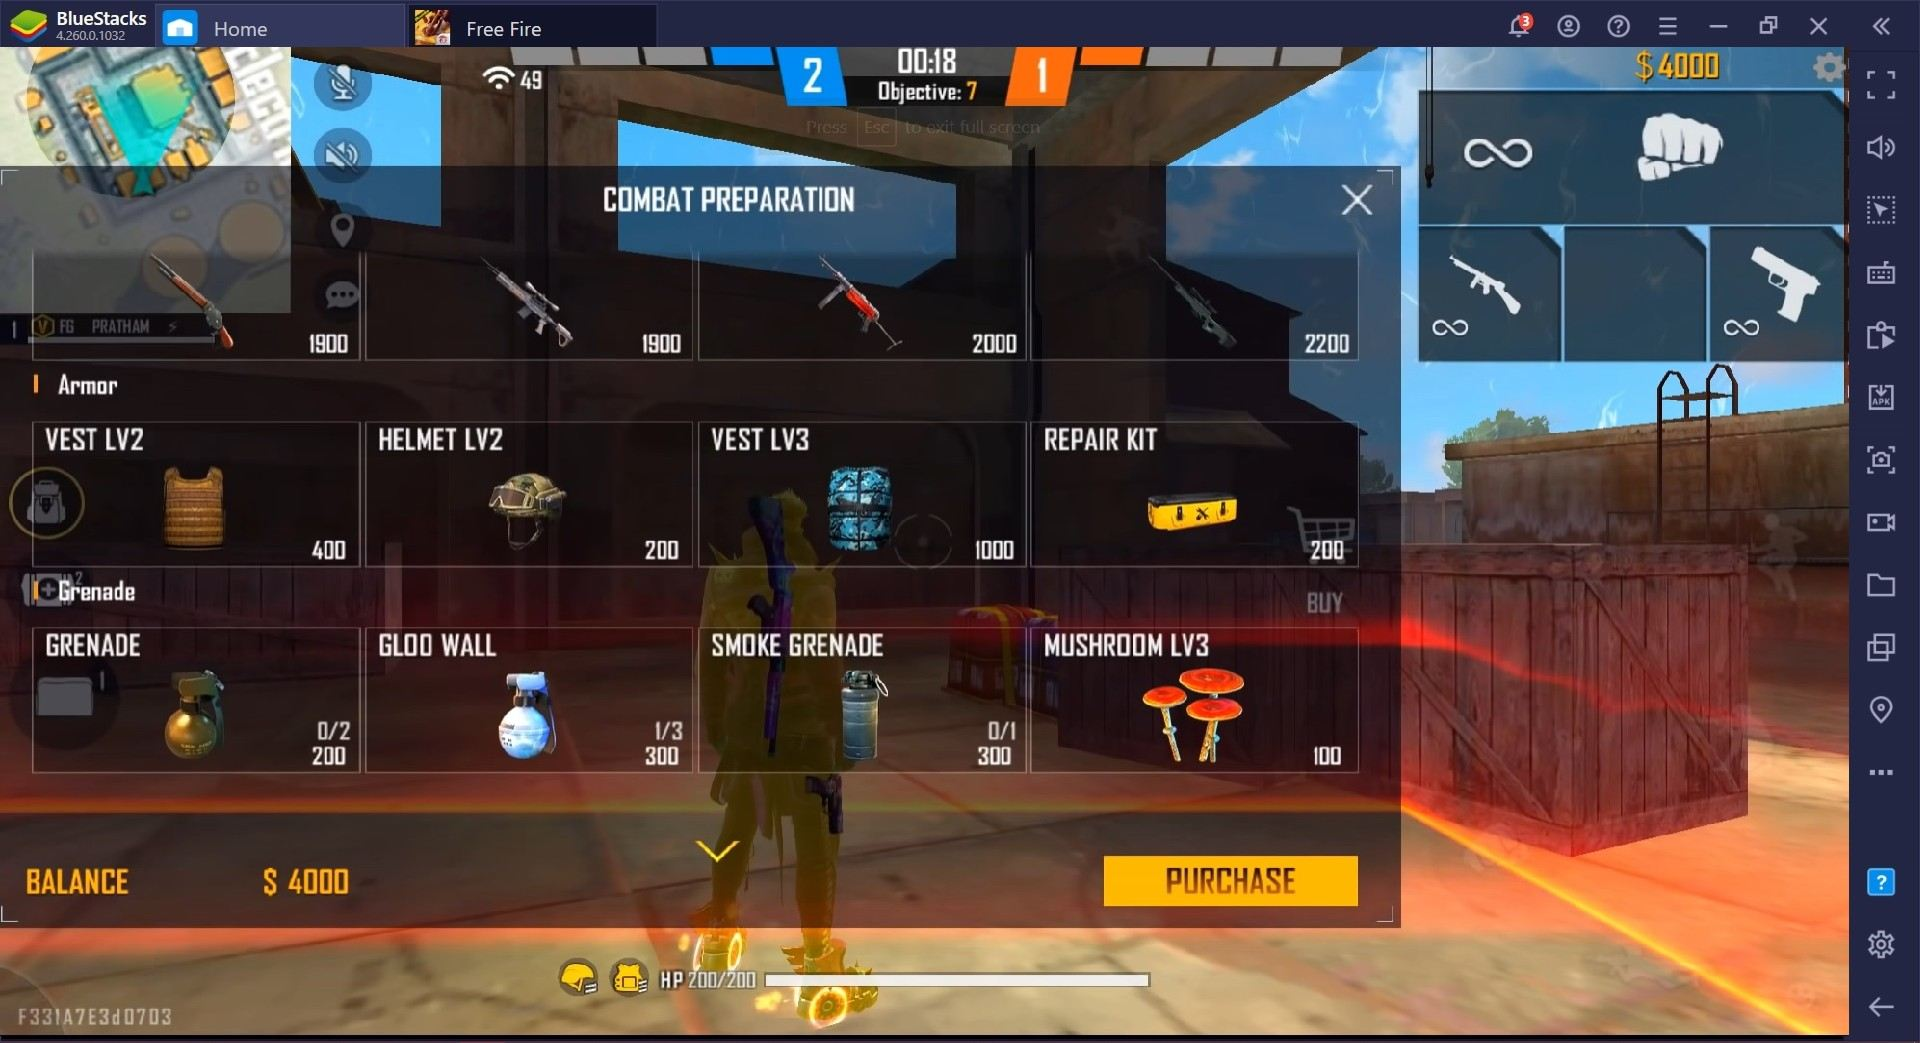 Free Fire Improvement Guide That Will Take Your Game to the Next Level